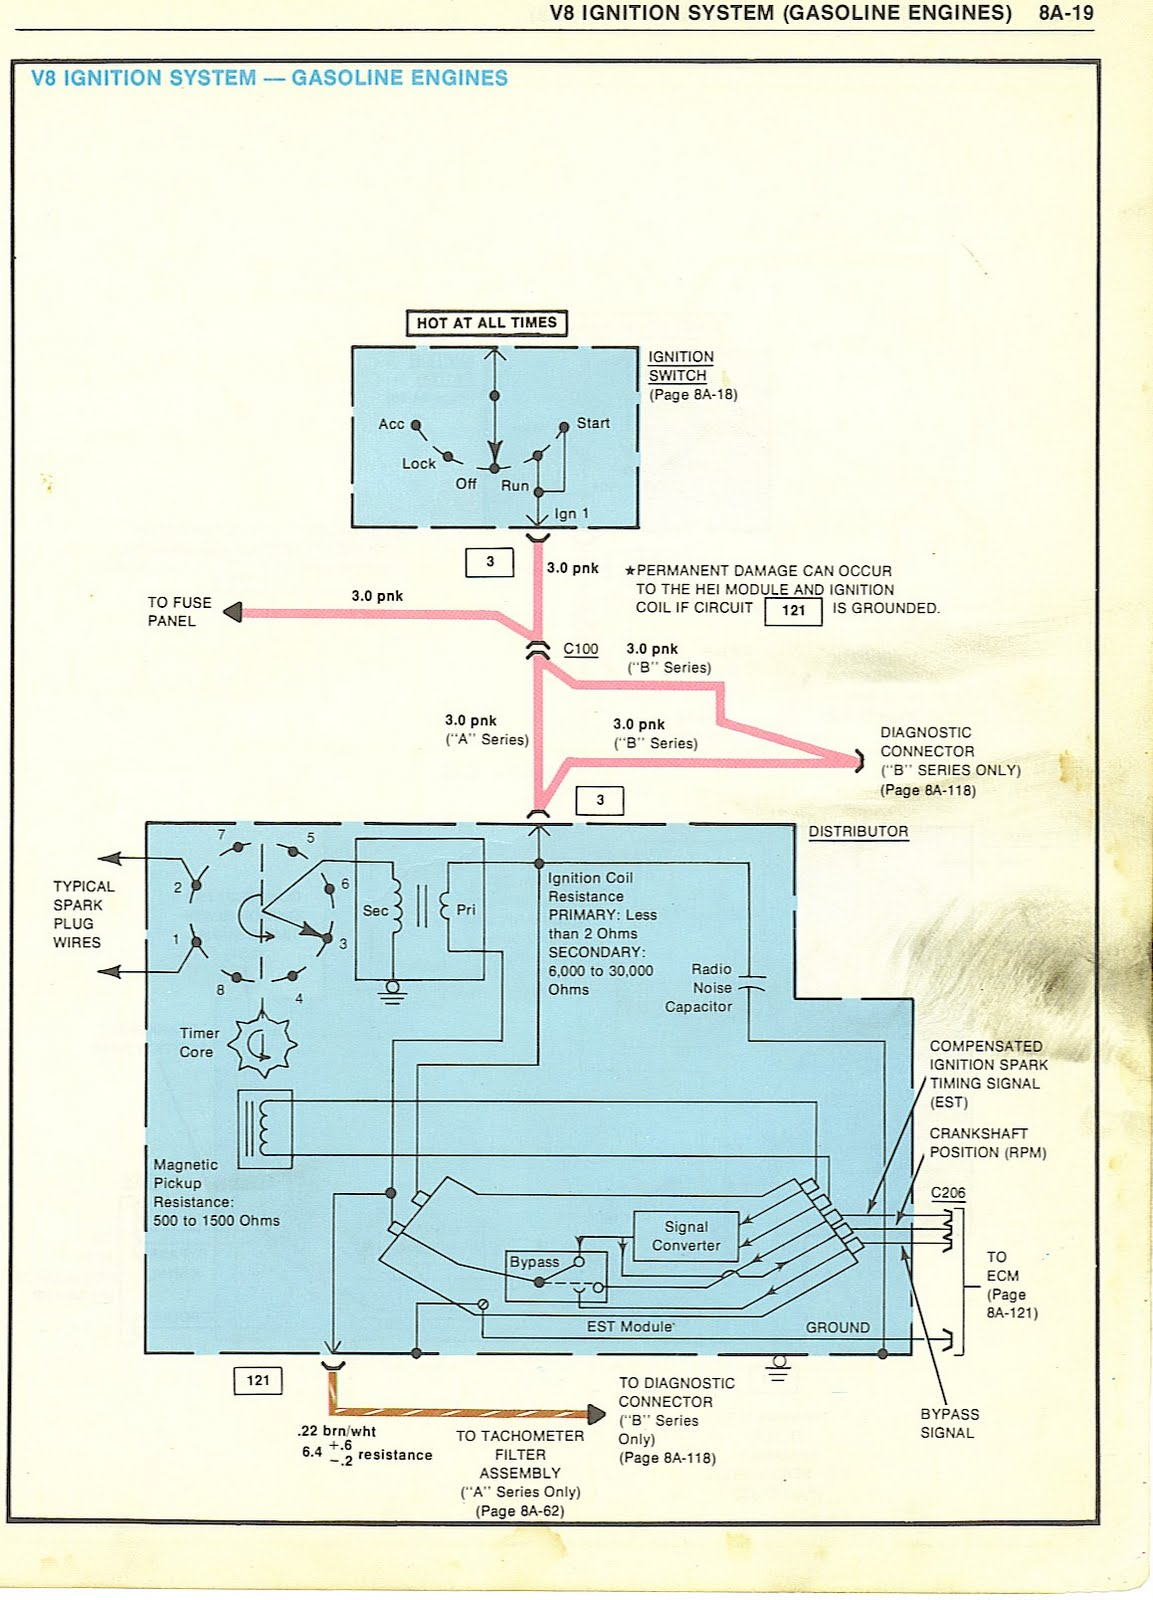 1984 chevy distributor wiring diagram chevrolet ignition wiring diagram chevrolet wiring diagrams v8 ignition system bu wiring diagram chevrolet